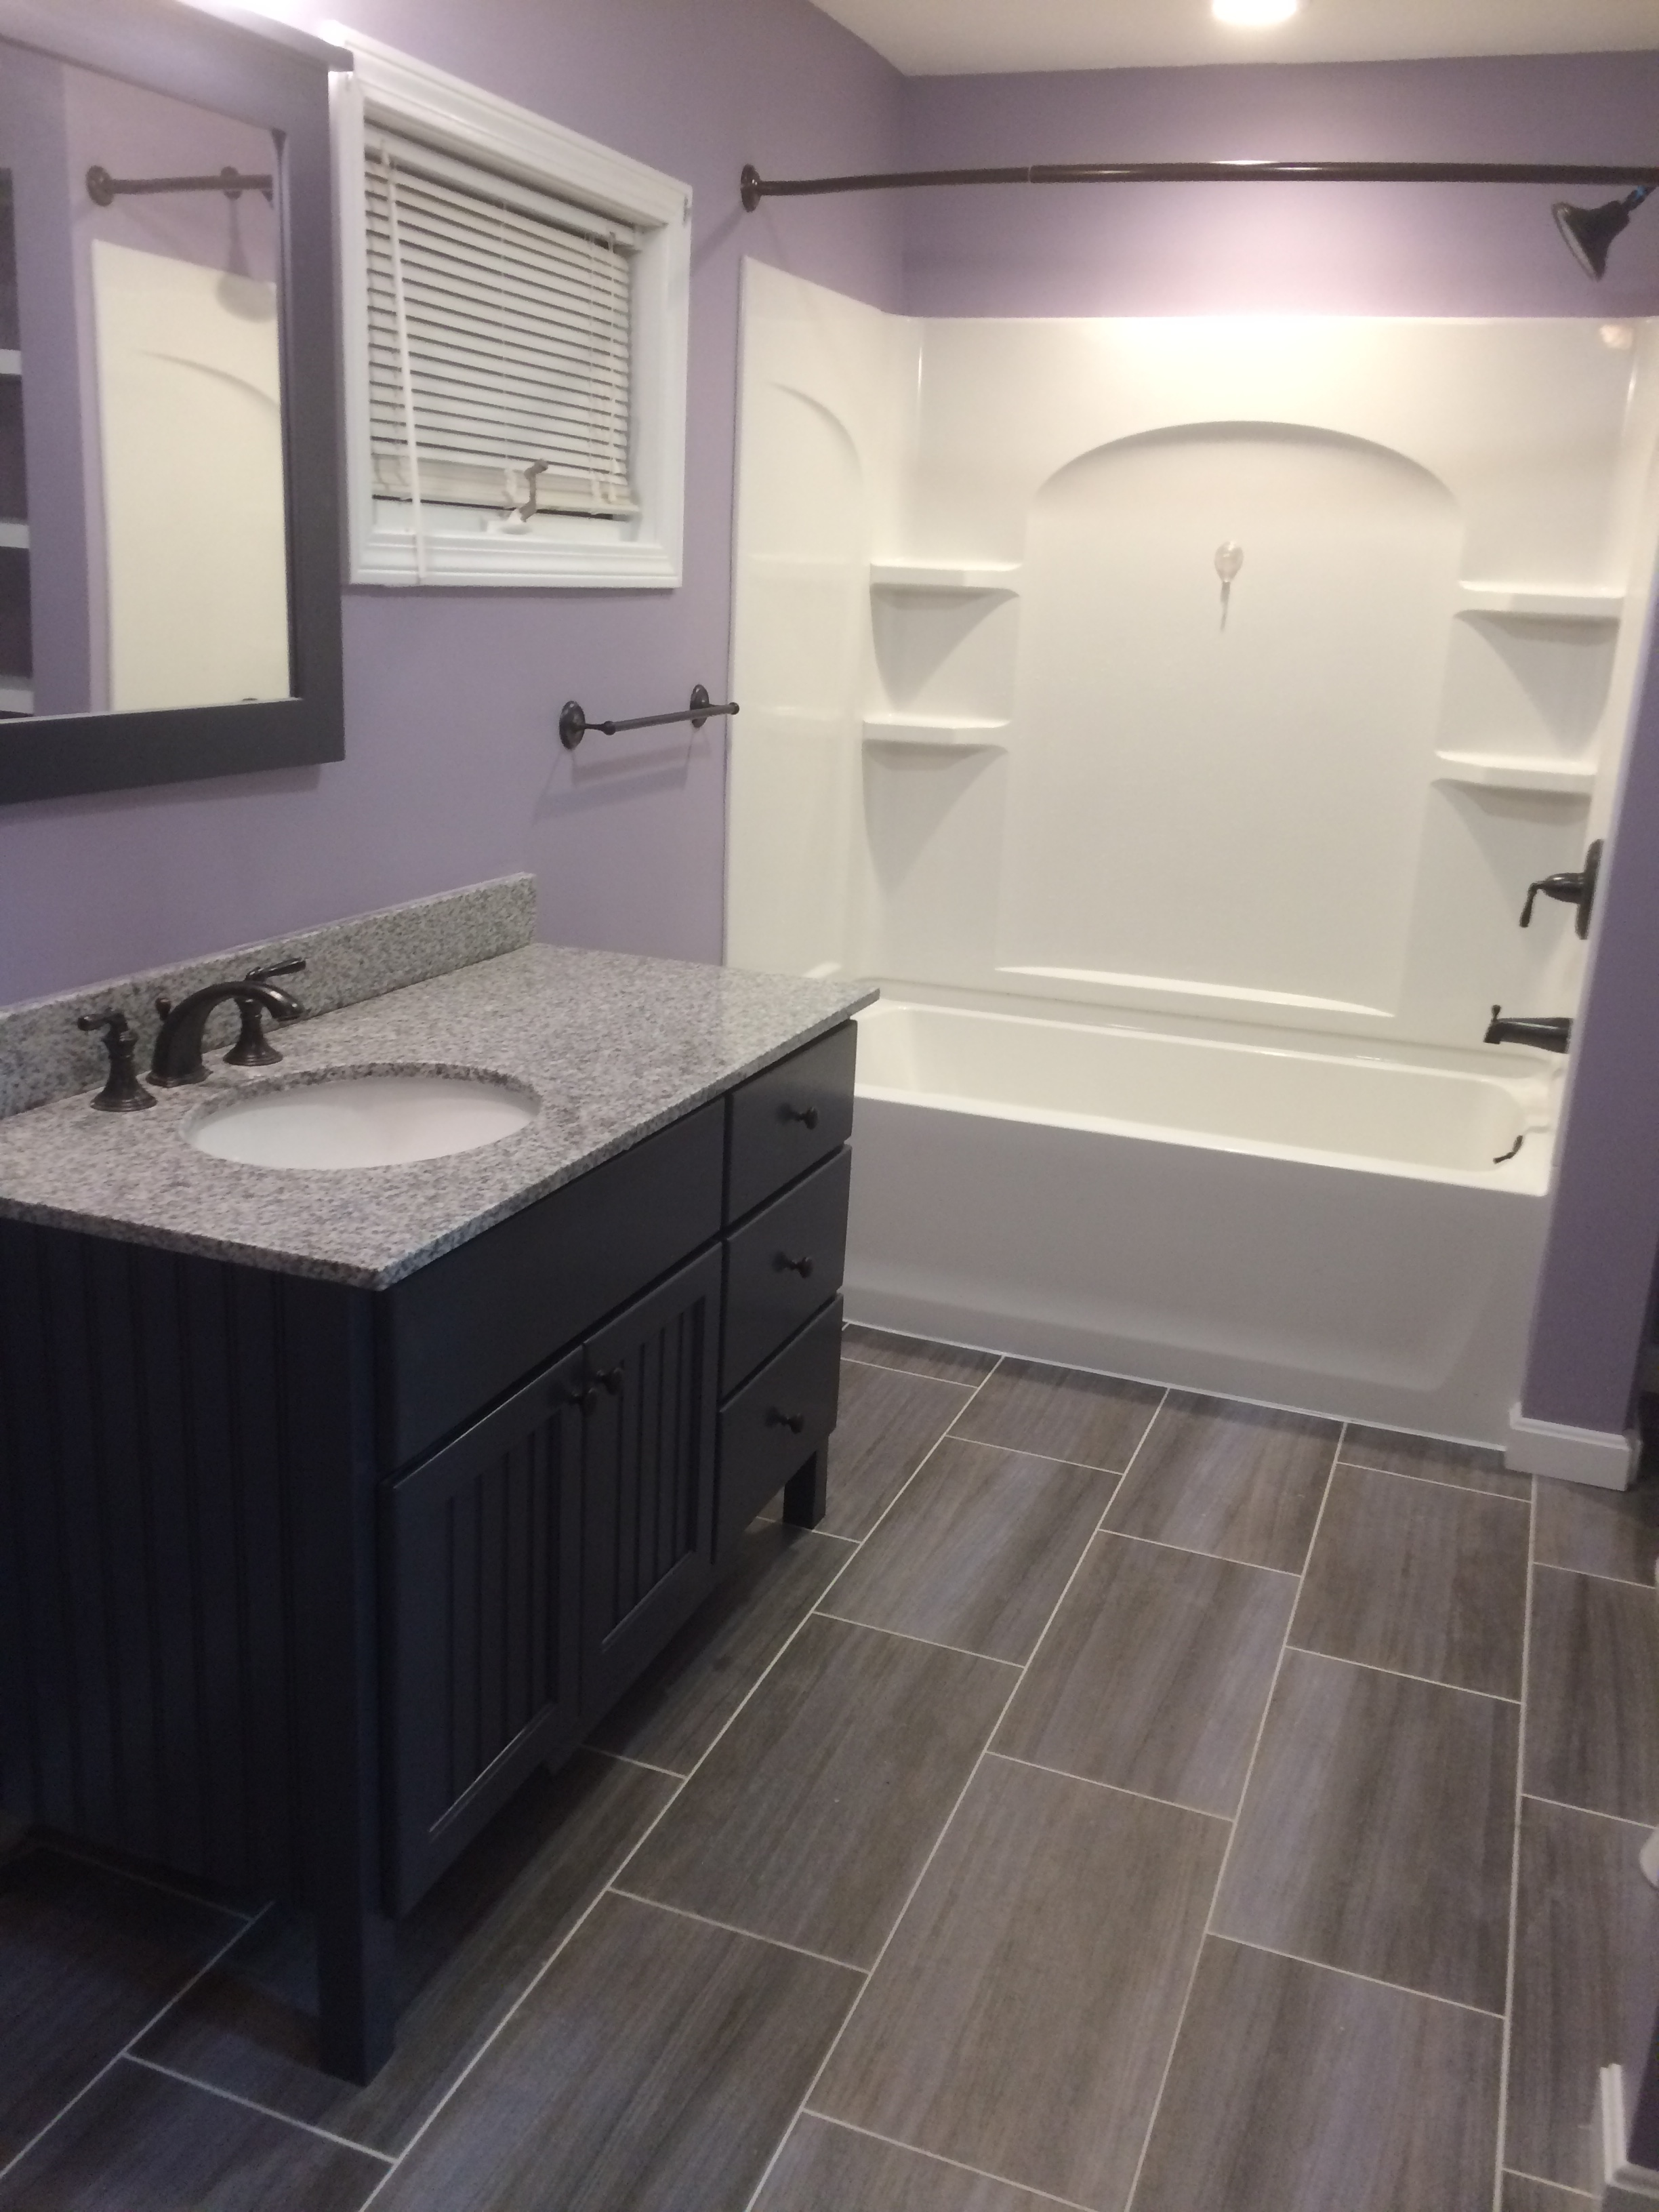 Basic bathroom remodel nh bath builders for Bath remodel nh